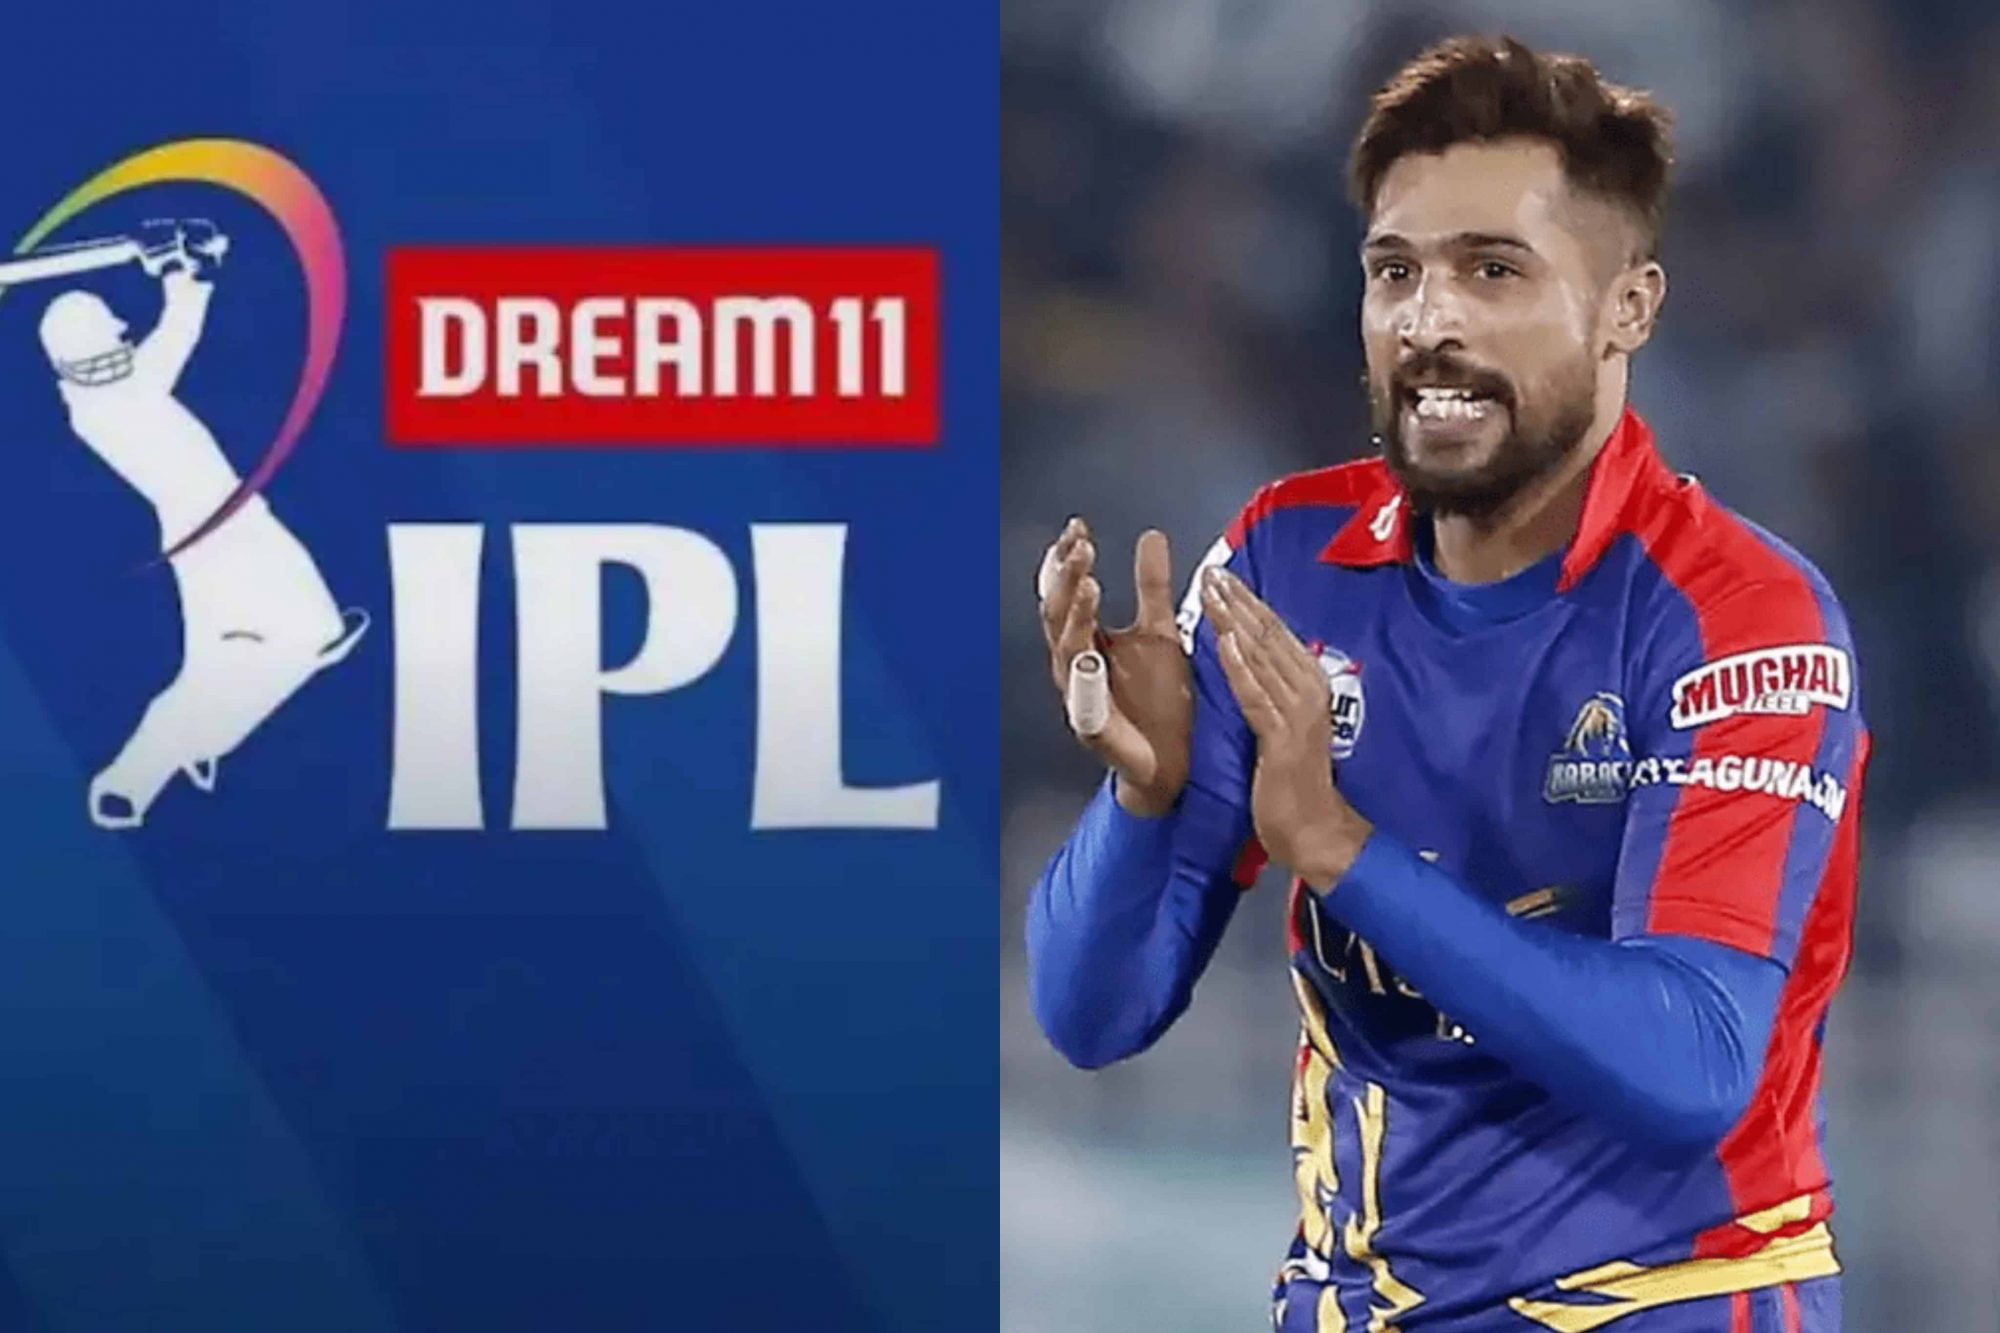 Mohammad Amir Opens Up On His Plans To Play In IPL After Getting British Citizenship